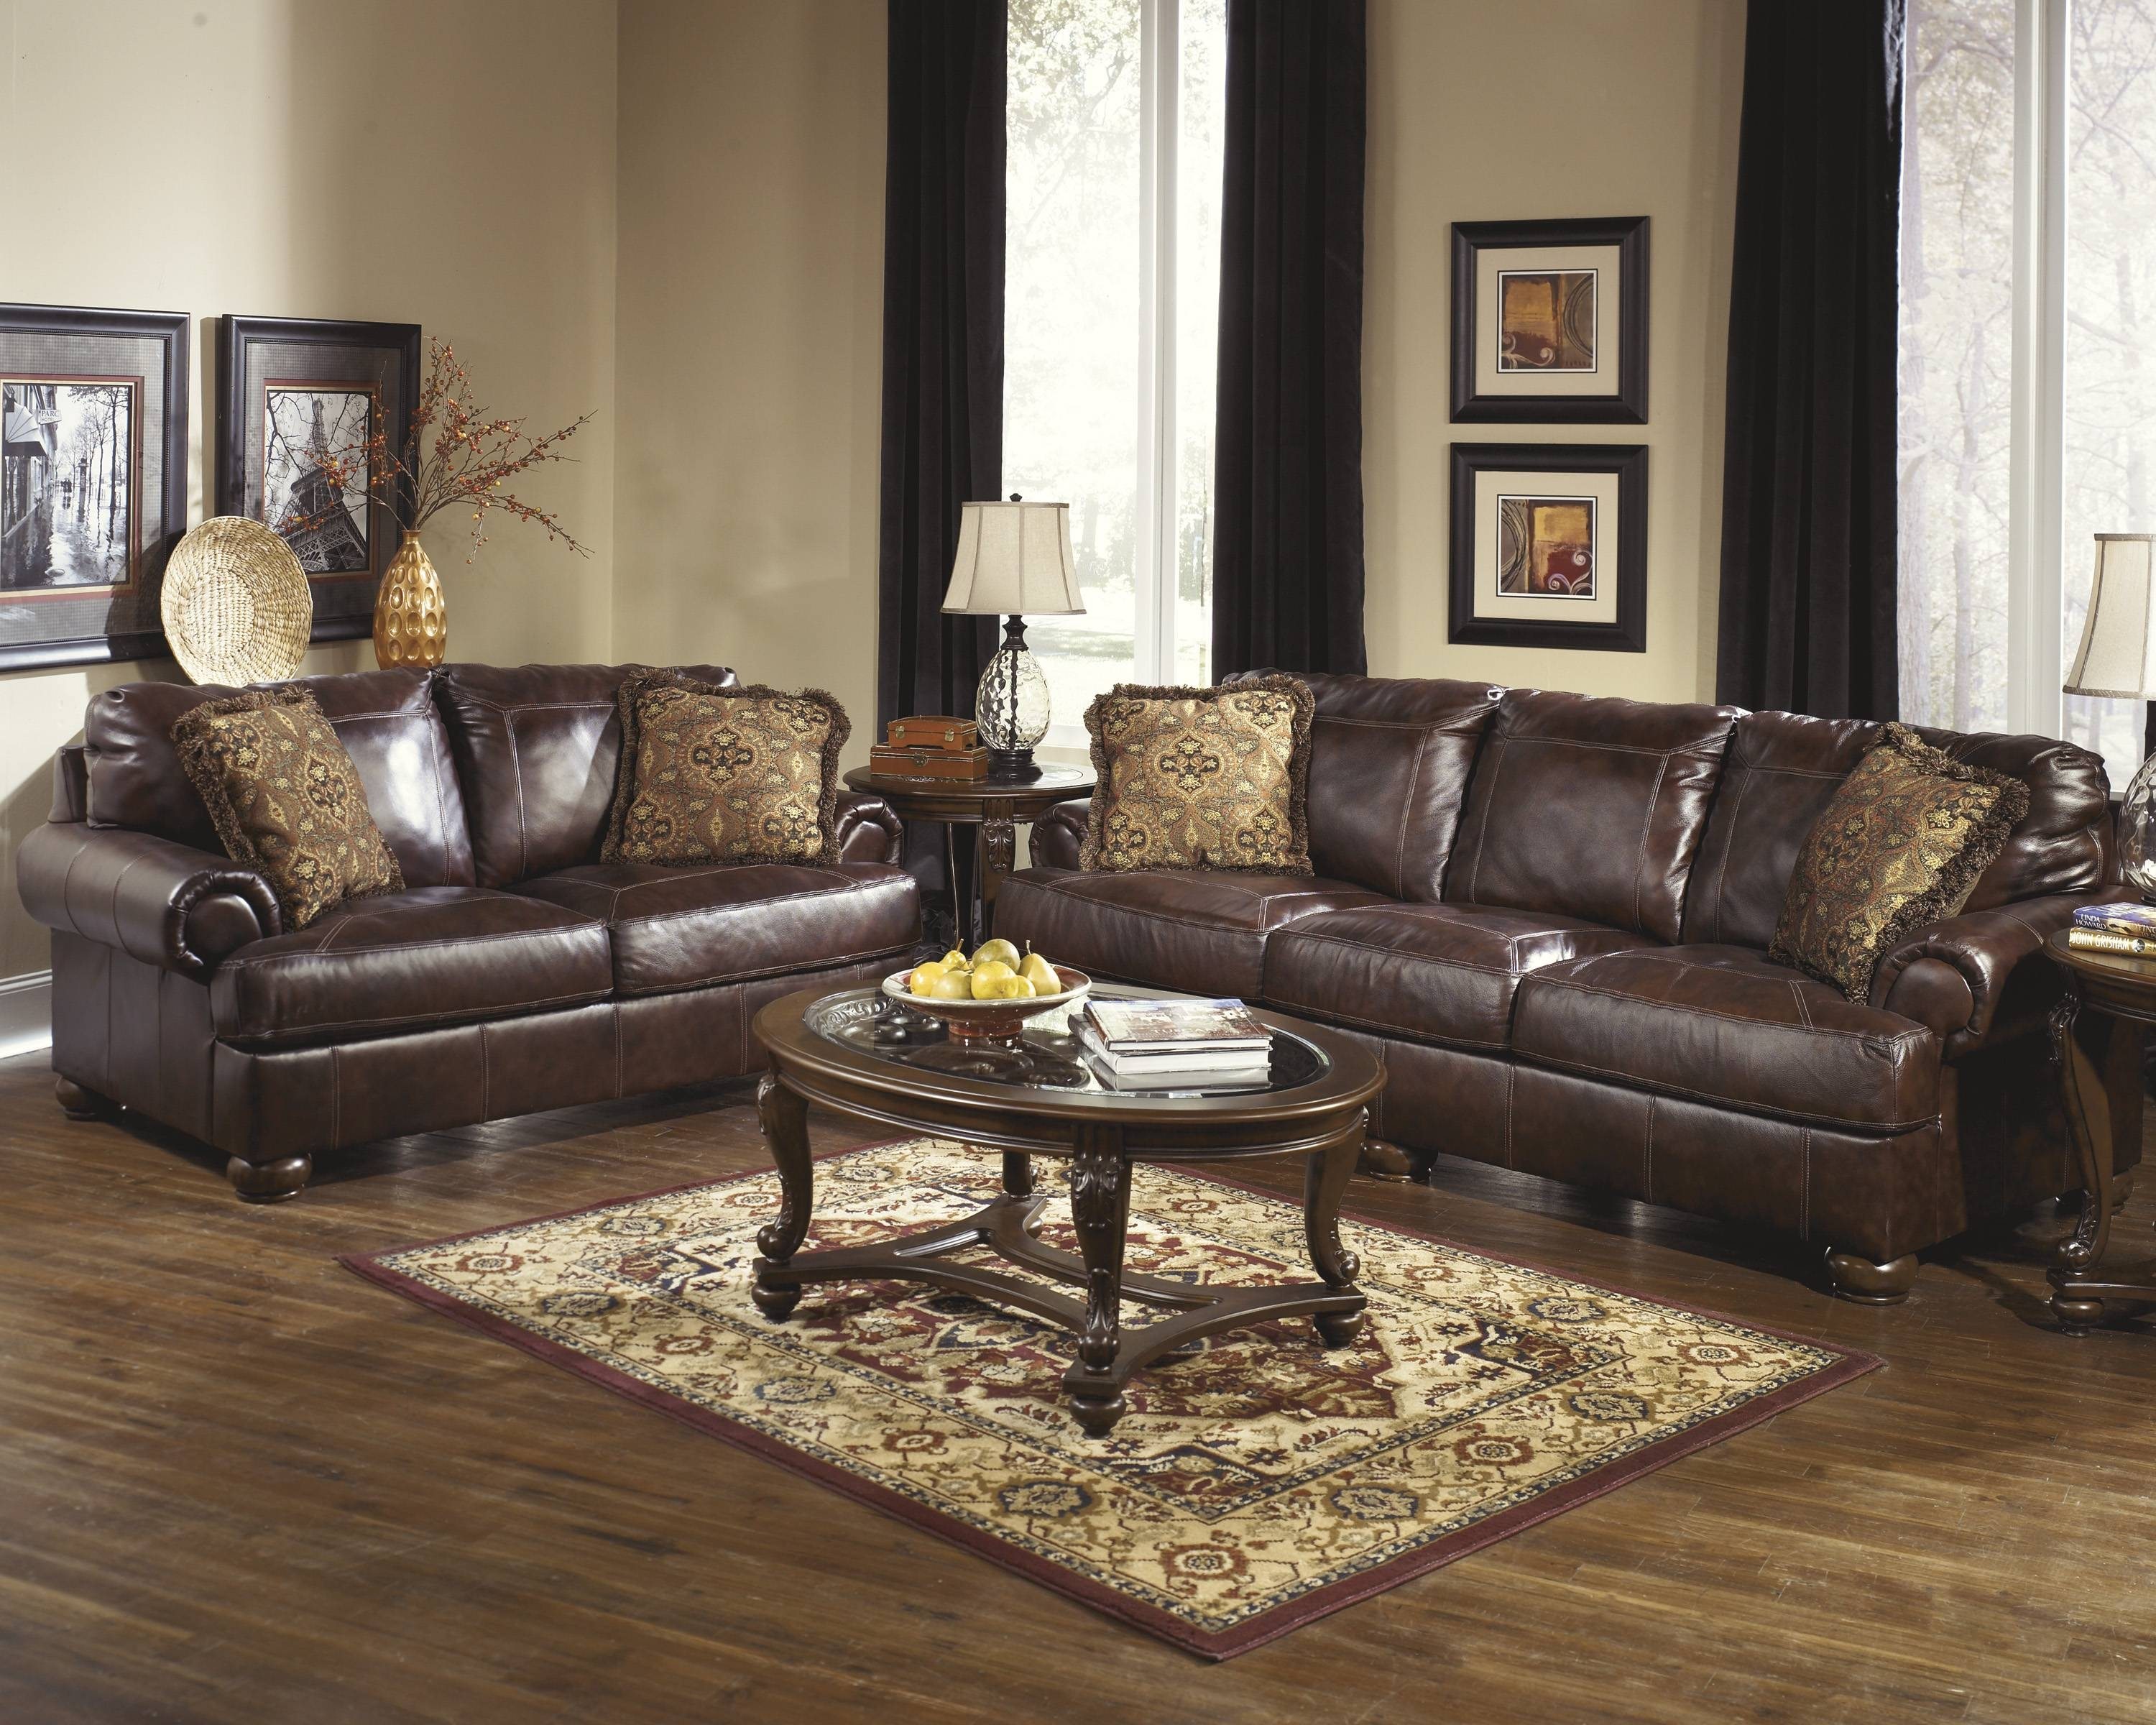 Cheap Ashley Furniture Living Room Sets Glendale, Ca - A Star within Round Sofa Chair Living Room Furniture (Image 3 of 30)